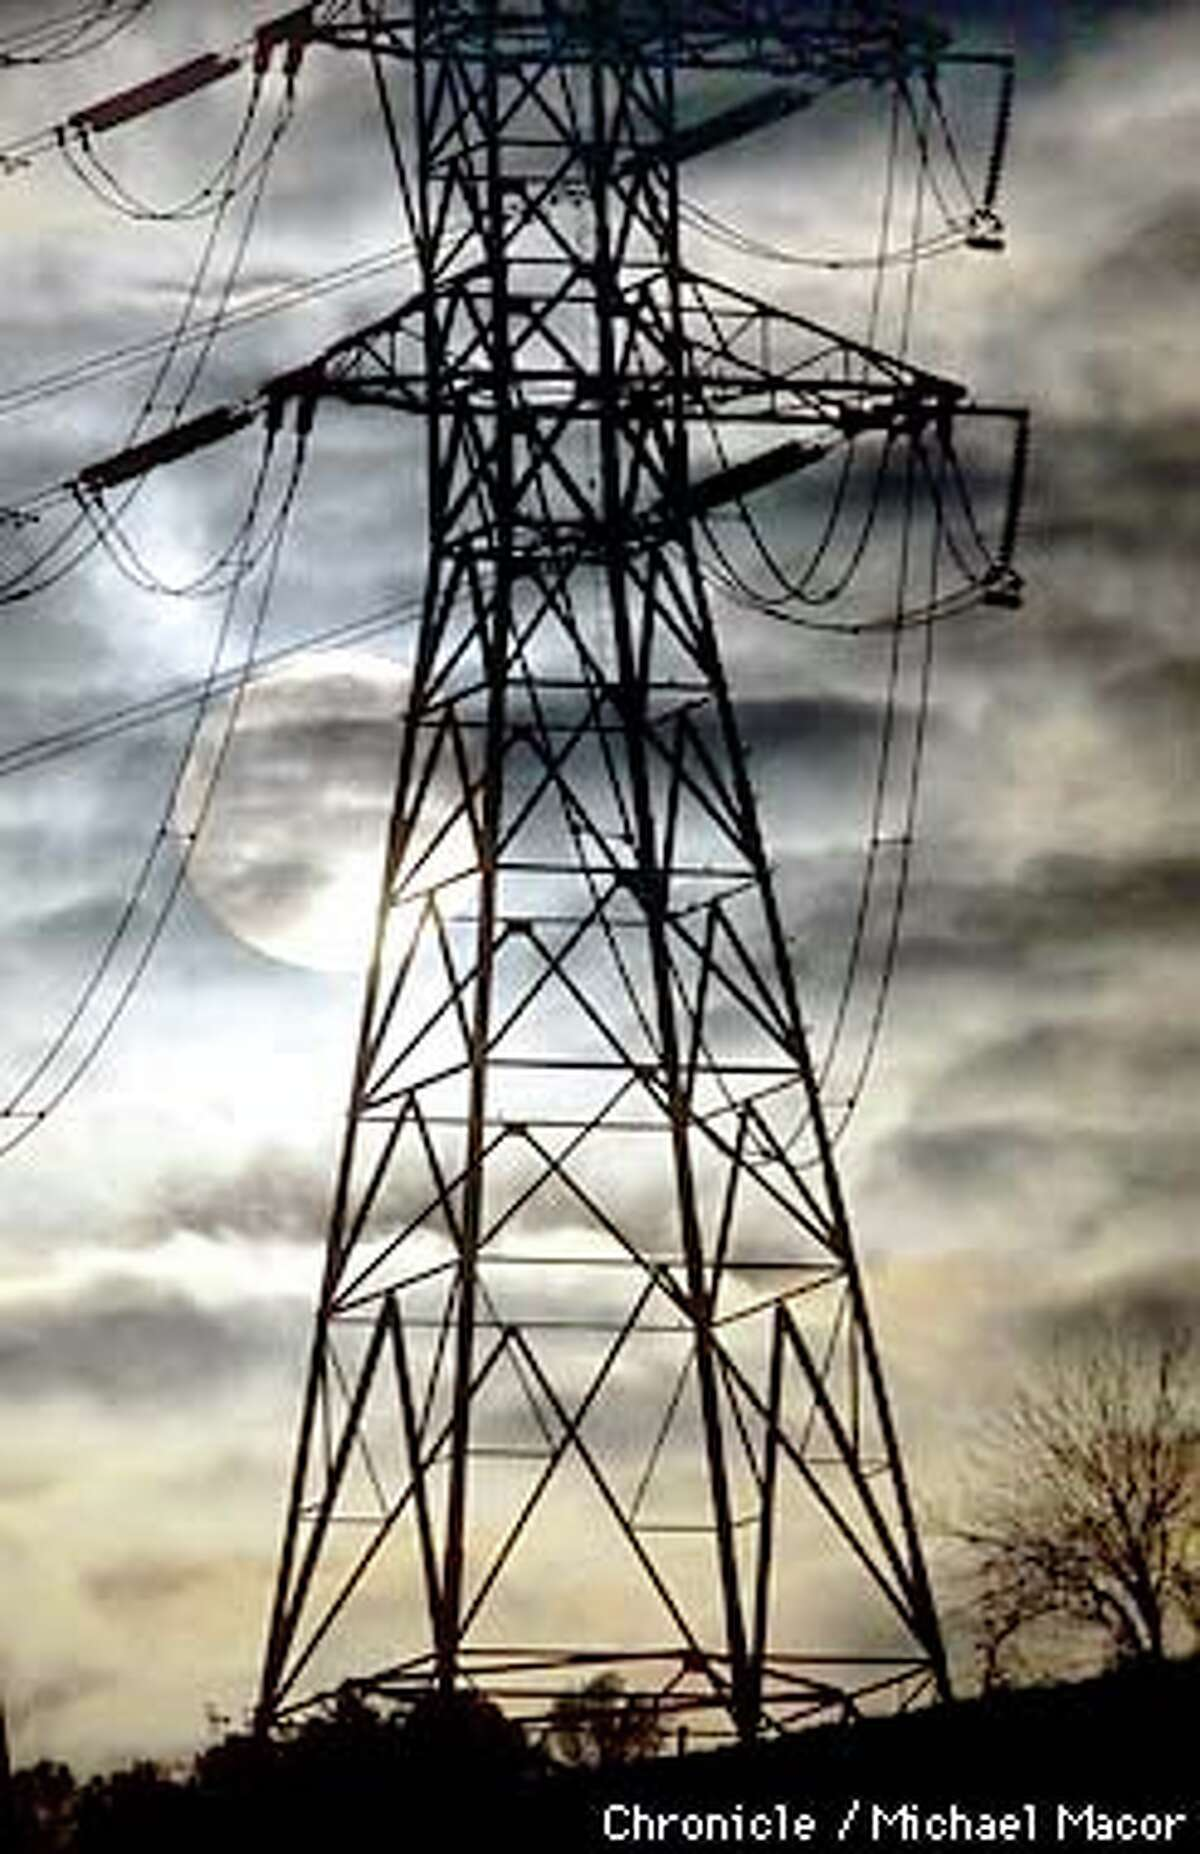 Transmission lines across California strained to stay up with demand for suddenly scarce electricity. Chronicle photo by Michael Macor